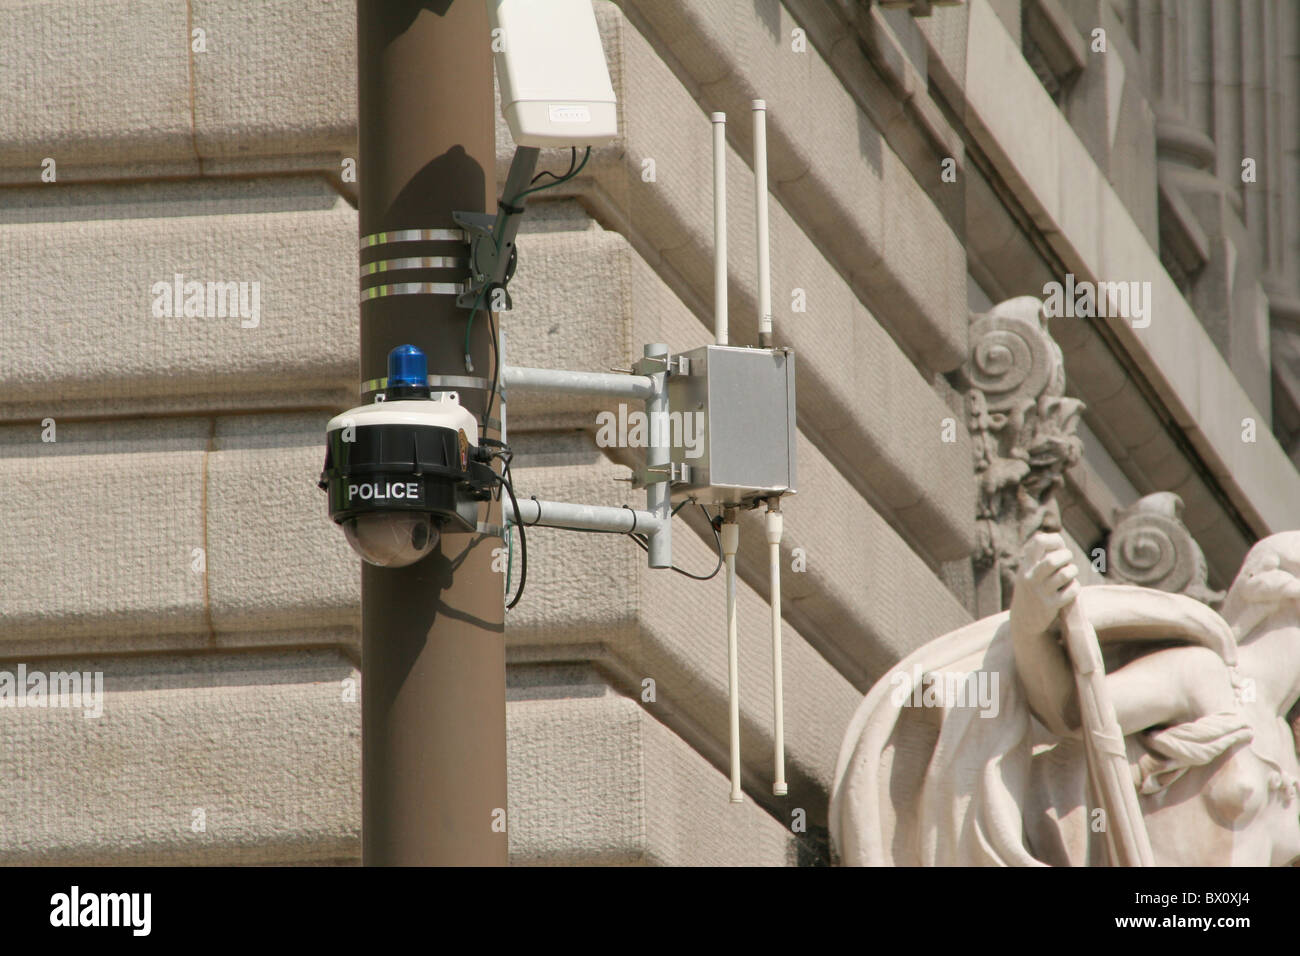 Polizei-Überwachungskamera mit Antenne. Cleveland, Ohio, USA. Big Brother beobachtet. Stockfoto